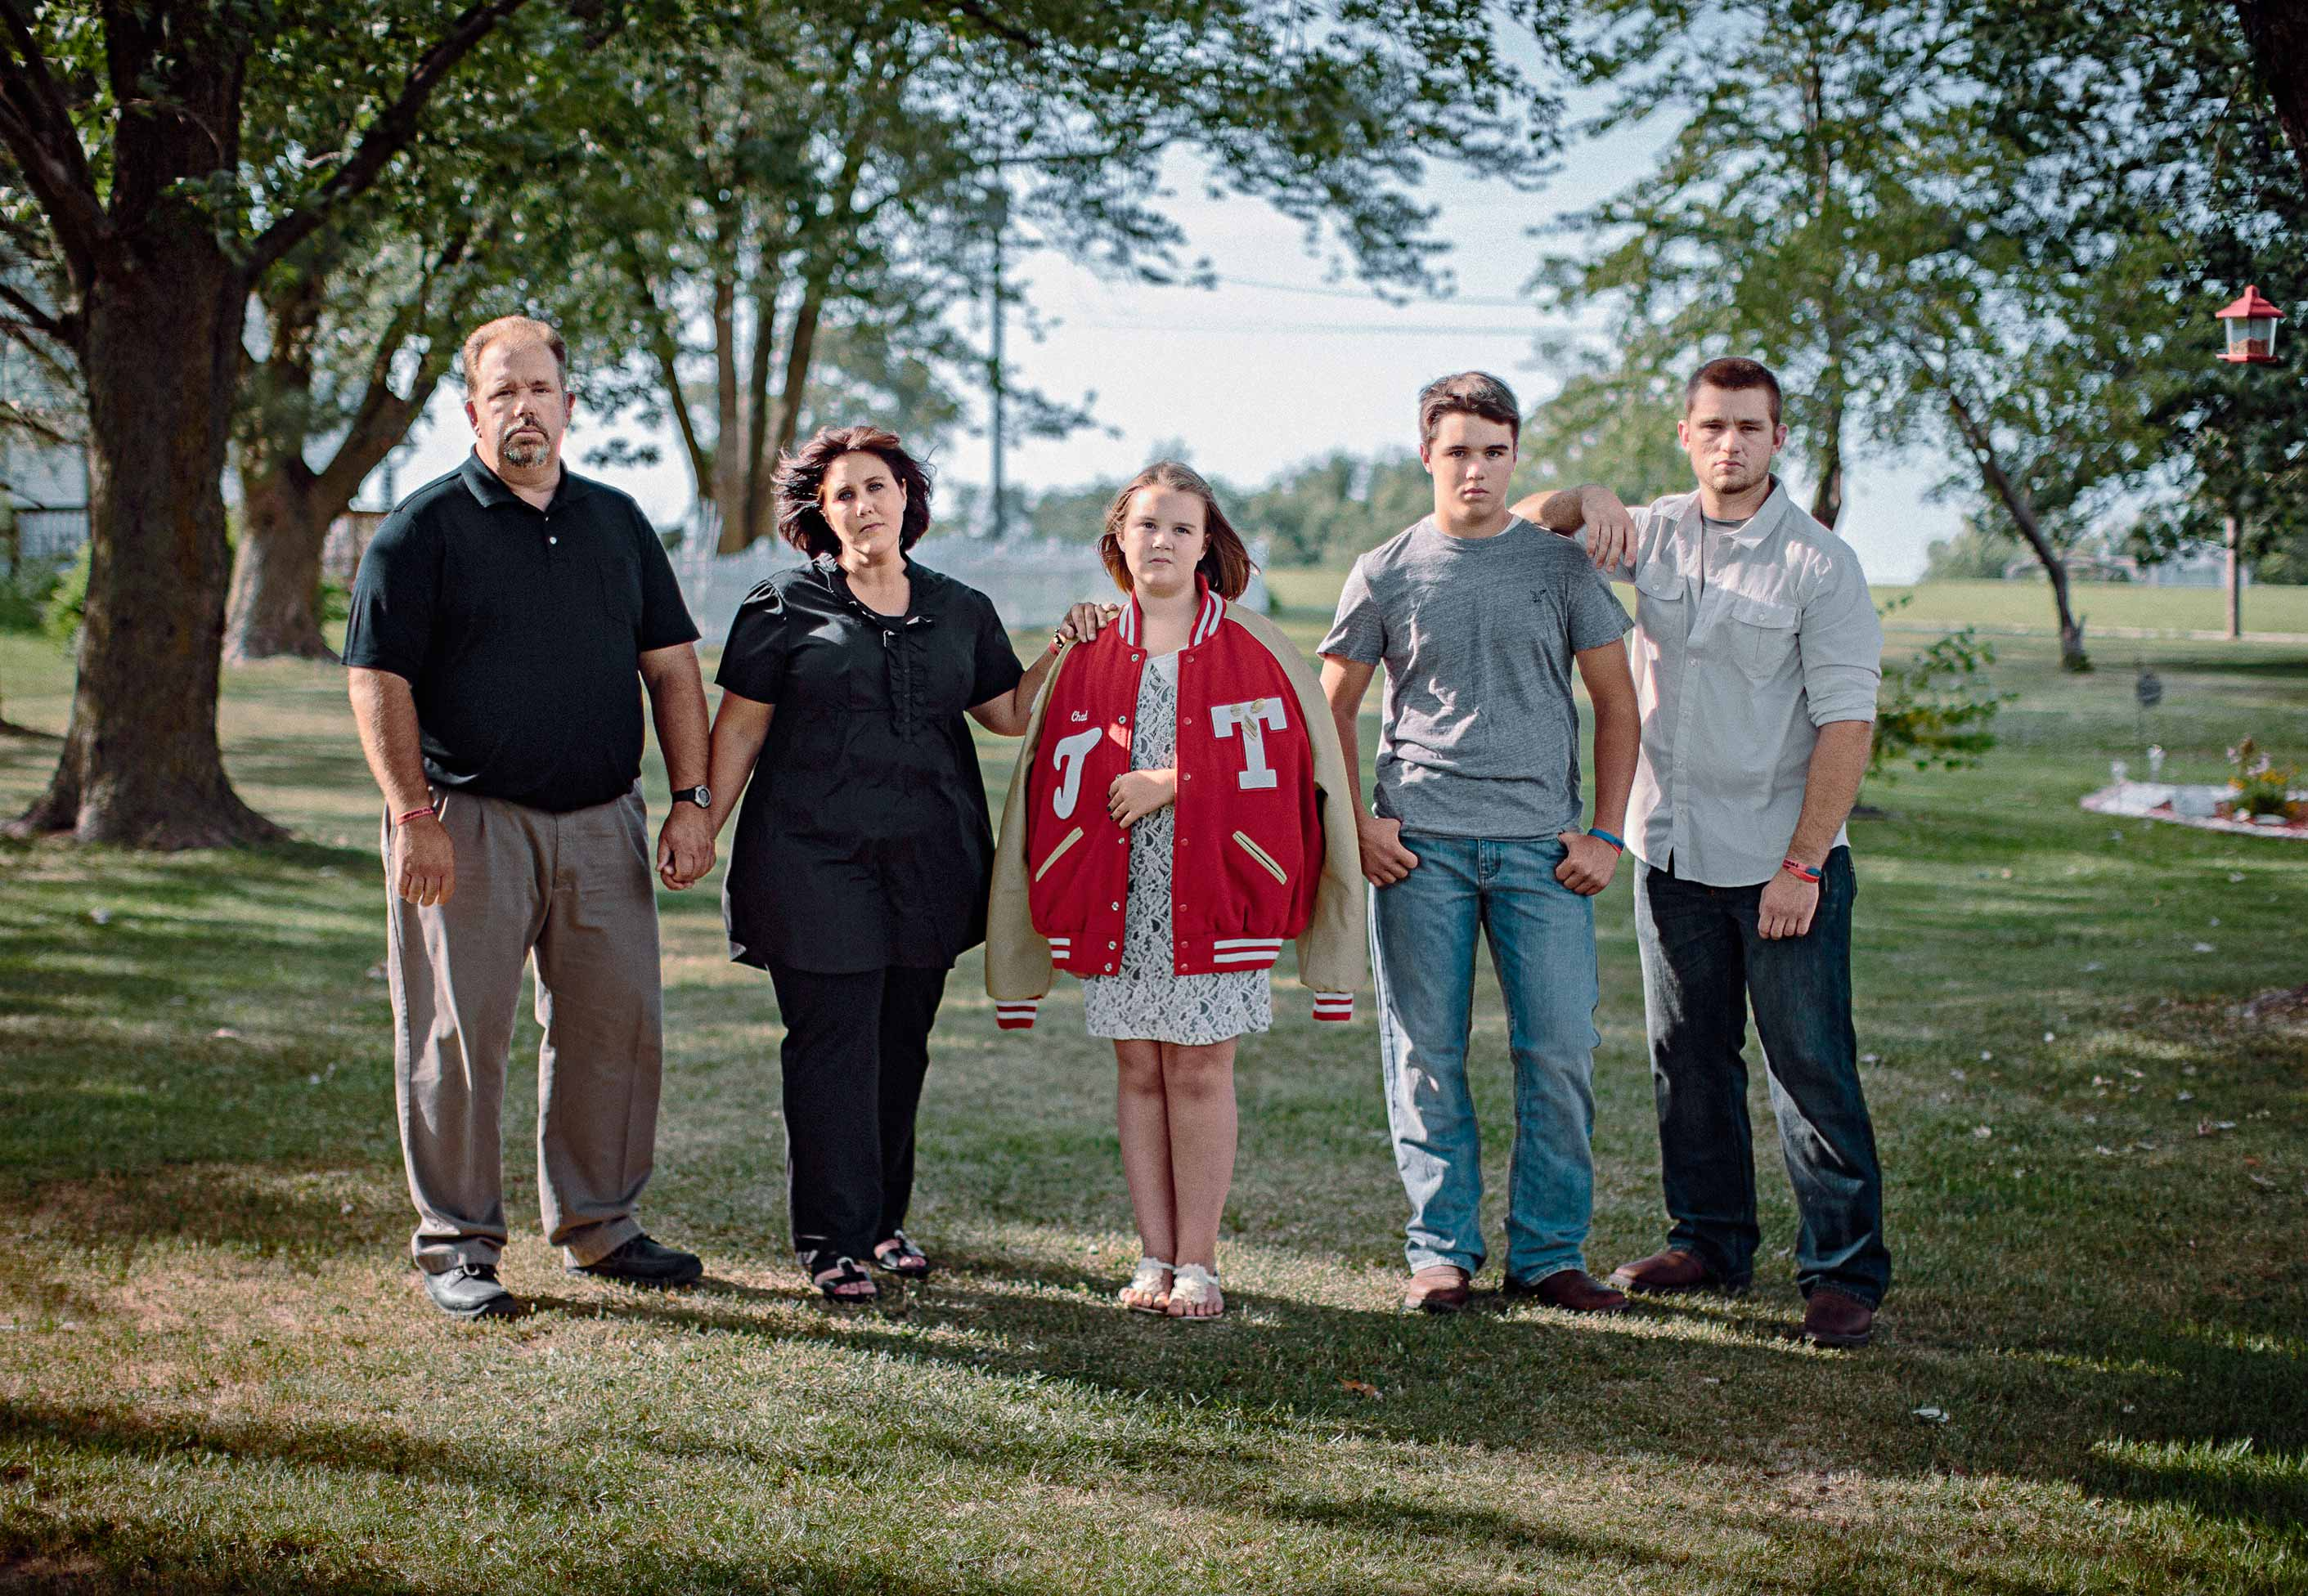 From left: Chad's father Ken, mother Amy and siblings Mandy, Kenton and Zane in the family's yard in central Missouri. Kenton, a high school freshman, has given up football